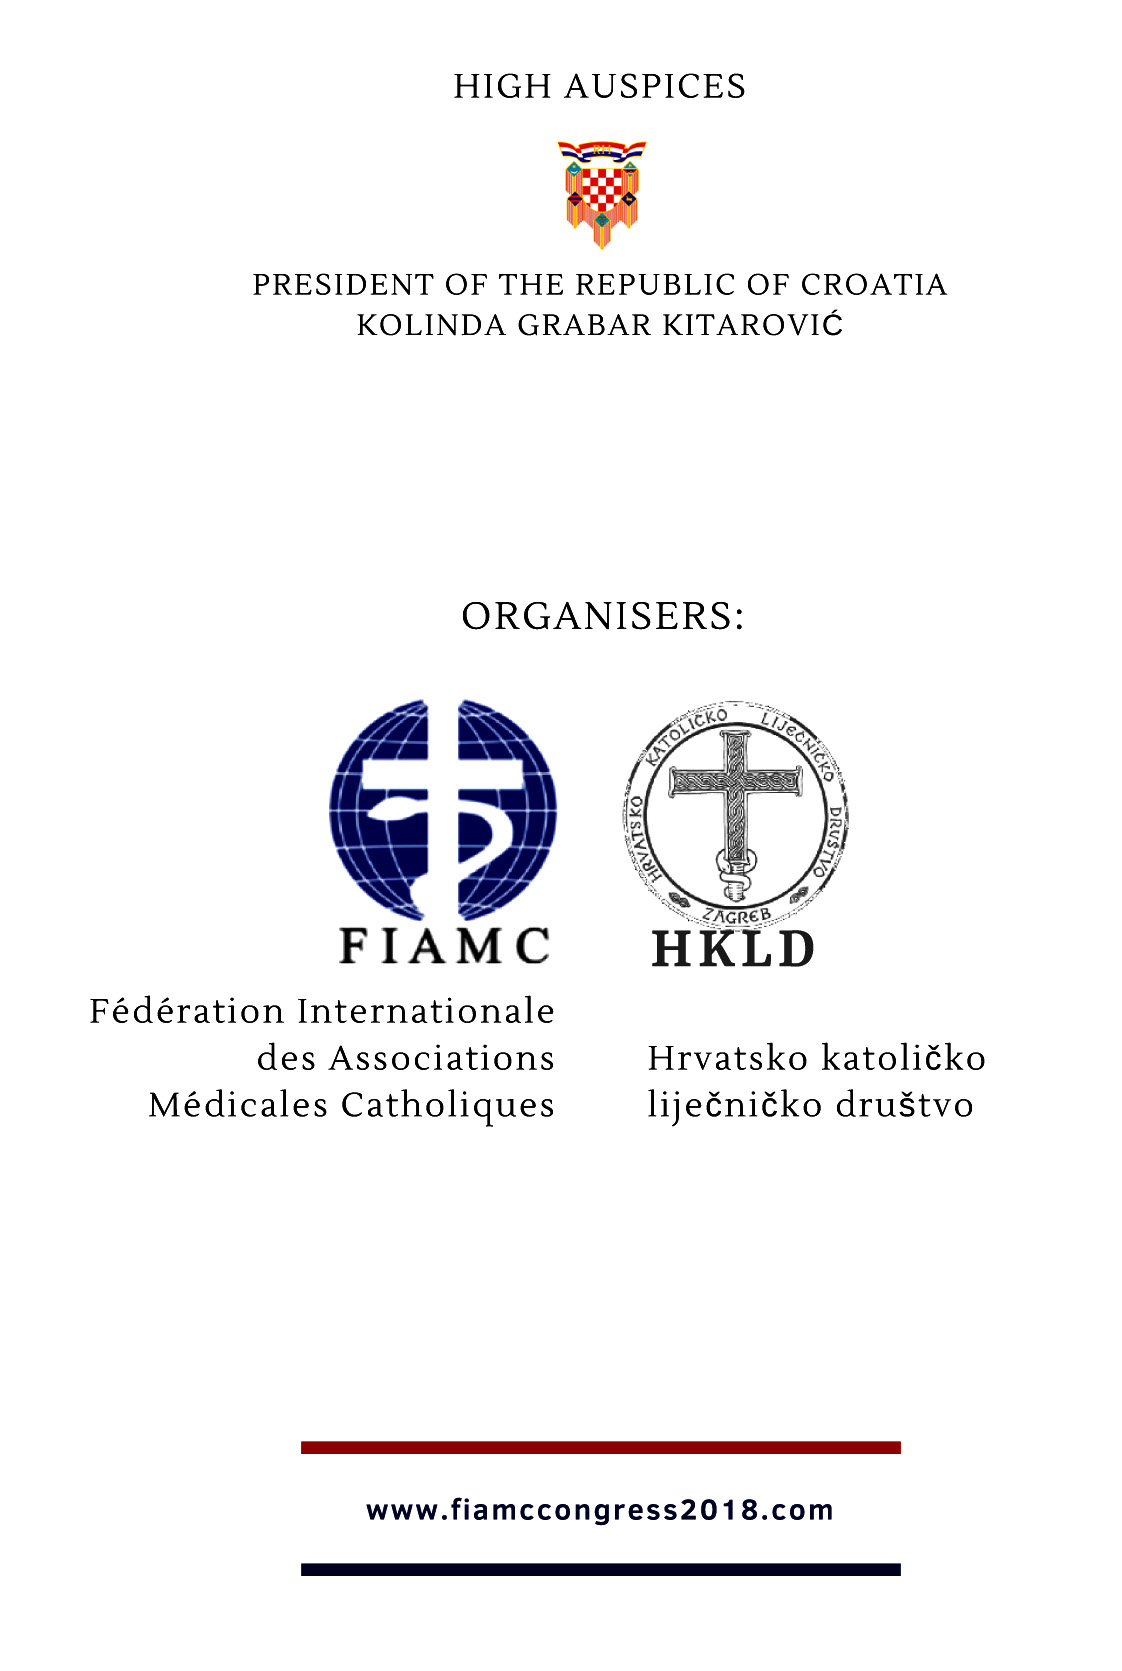 Pozivnica 25th FIAMC Congress 2